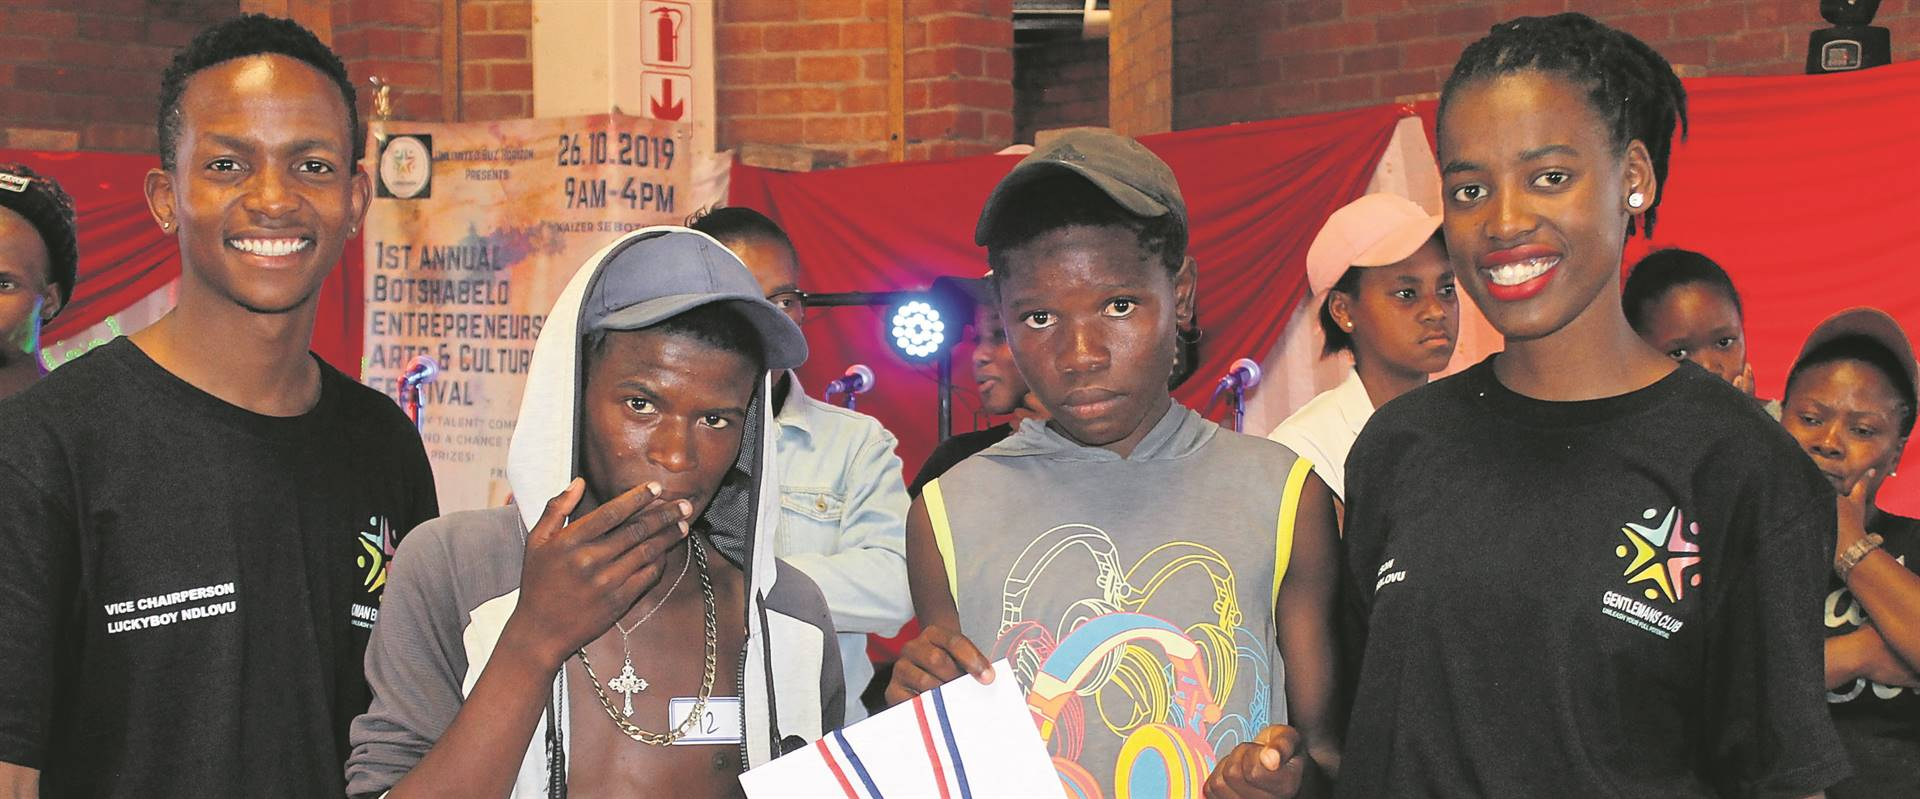 The Botshabelo Entrepr­eneurship, Arts and Culture Festival marked its first anniversary hosting a series of events for participation by the youth. This was held recently (26/10) in Section H and saw the best performers receive prizes and awarded certificates by the organisers, Unlimited Buz Horizon (UBH) and Kutanga, organisations led by students studying at higher academic institutions in the Free State. From the left are Luckyboy Ndlovu (deputy chairperson of UBH), Tumelo Mokhoati, Tokelo Taaibos (winners) and Nozipho Ndlovu (UBH chairperson). Photo: Supplied